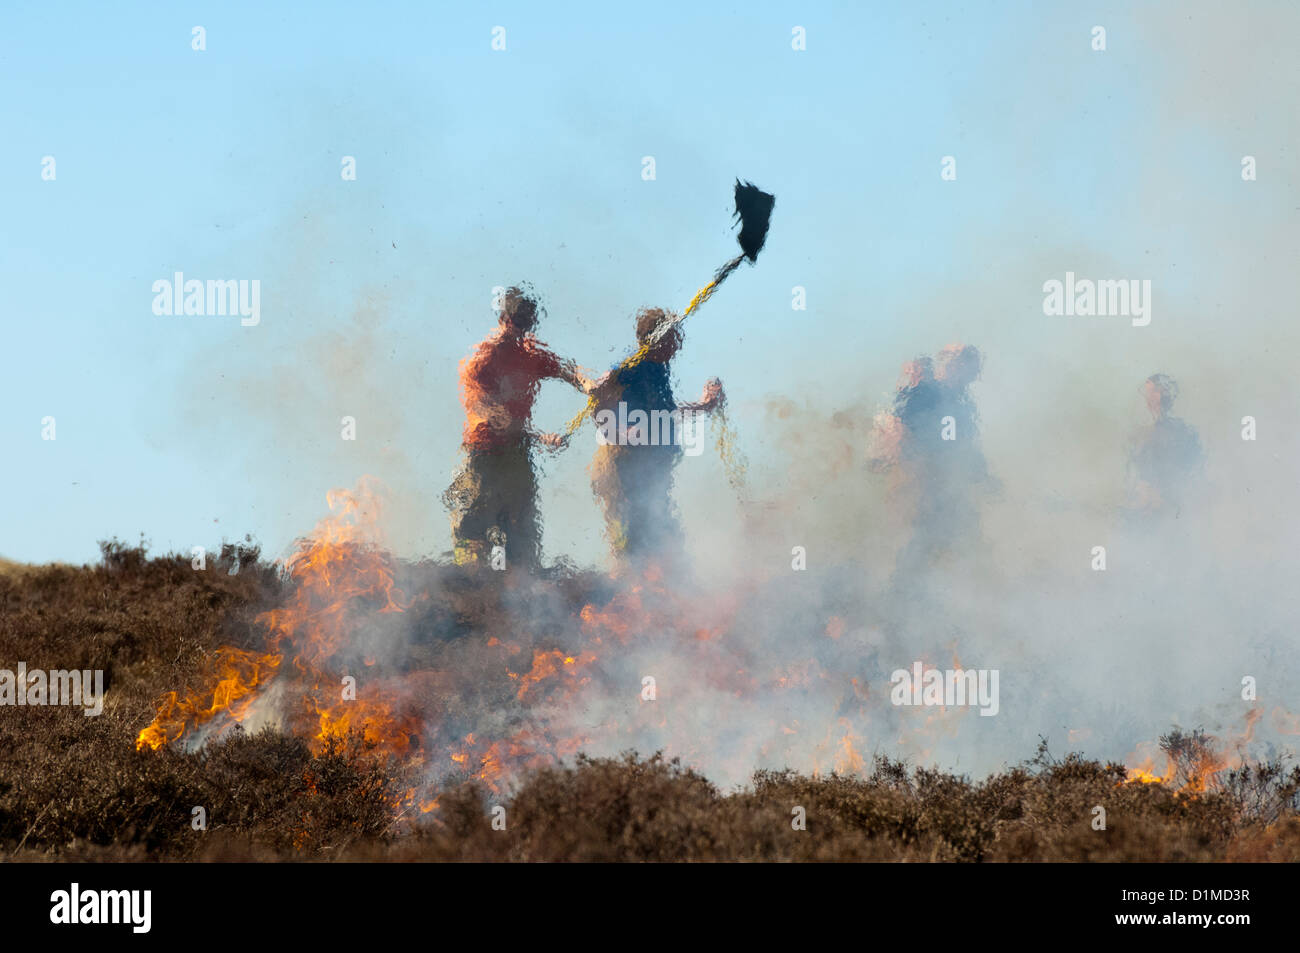 Firemen from Kirkby Stephen, Cumbria, fighting a fire which has got out of control on moorland. - Stock Image